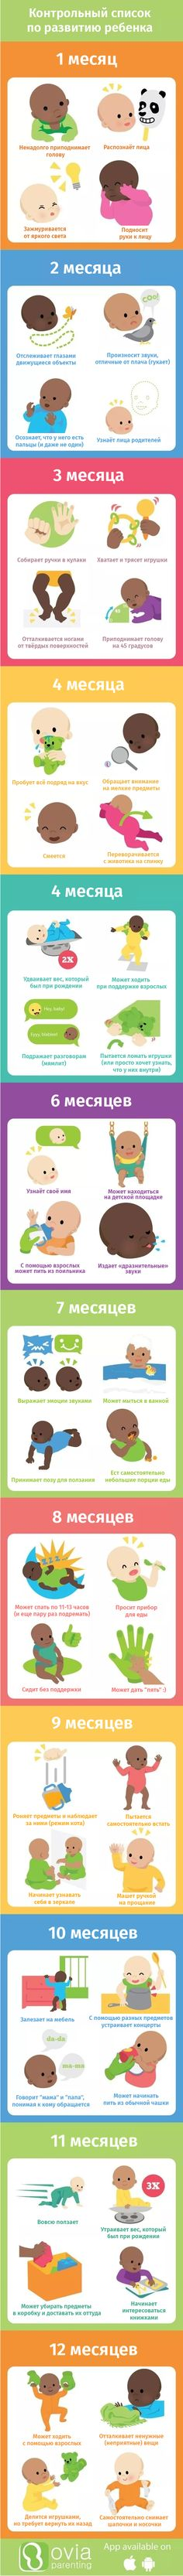 All About Your 2-Month-Old Baby\u0027s Development - Milestones, Games - Baby Development Chart